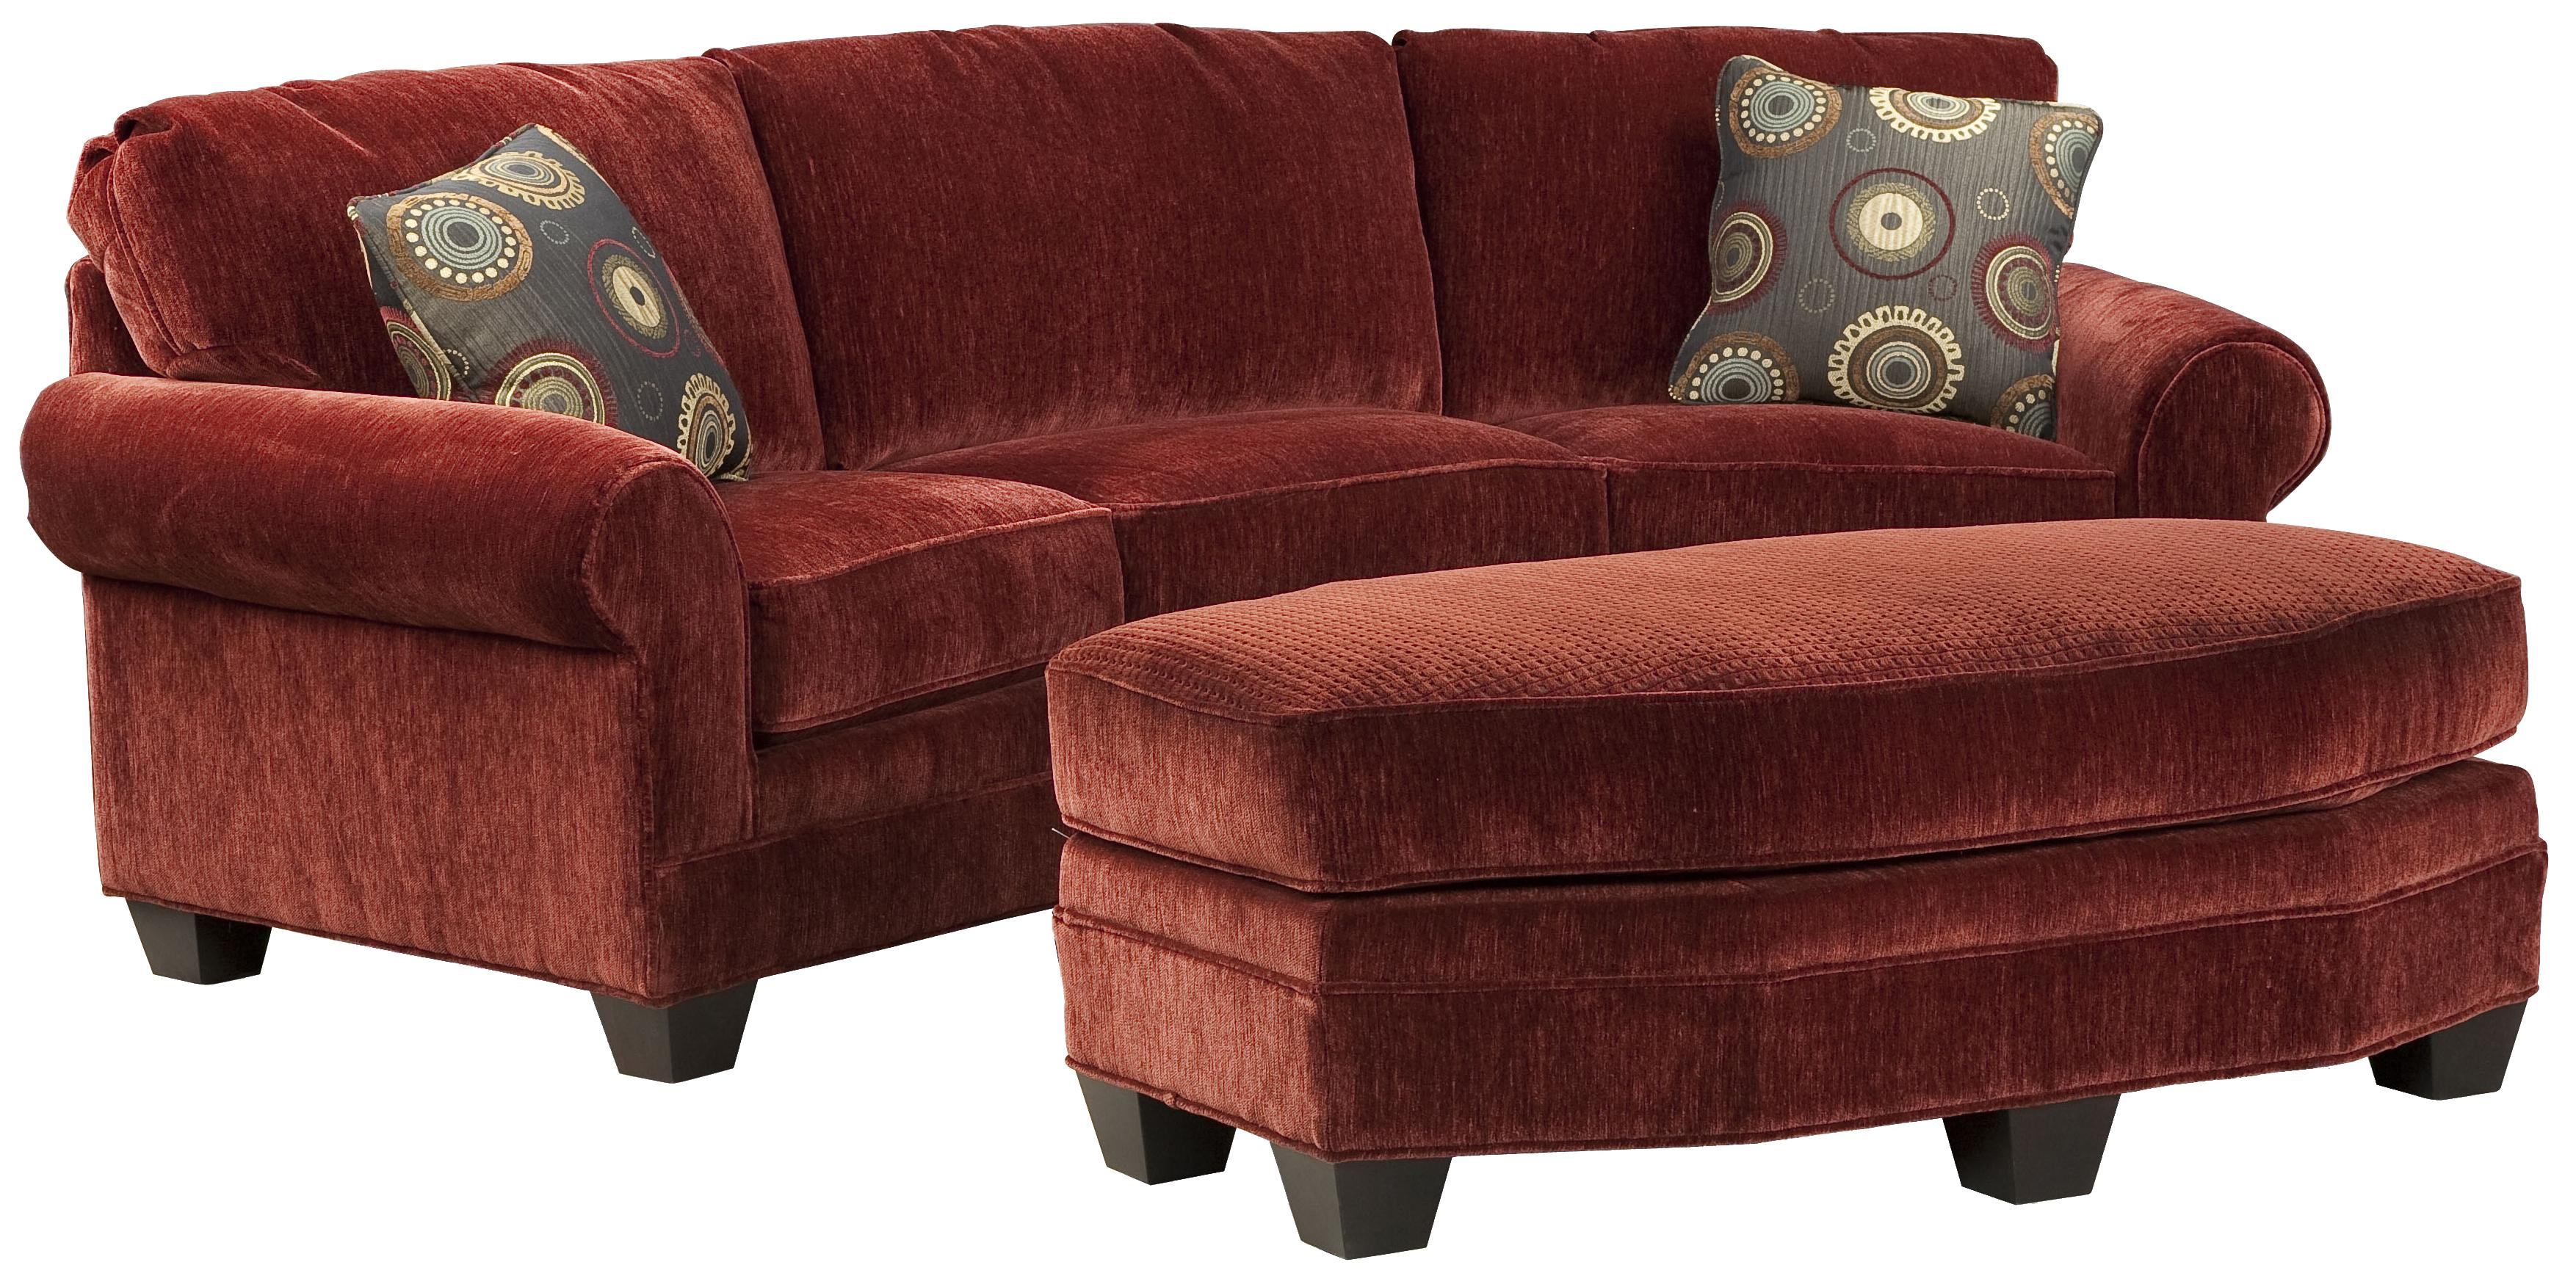 marshfield baldwin sofa next clearance beds conversation century cornerstone ltd 7600 w